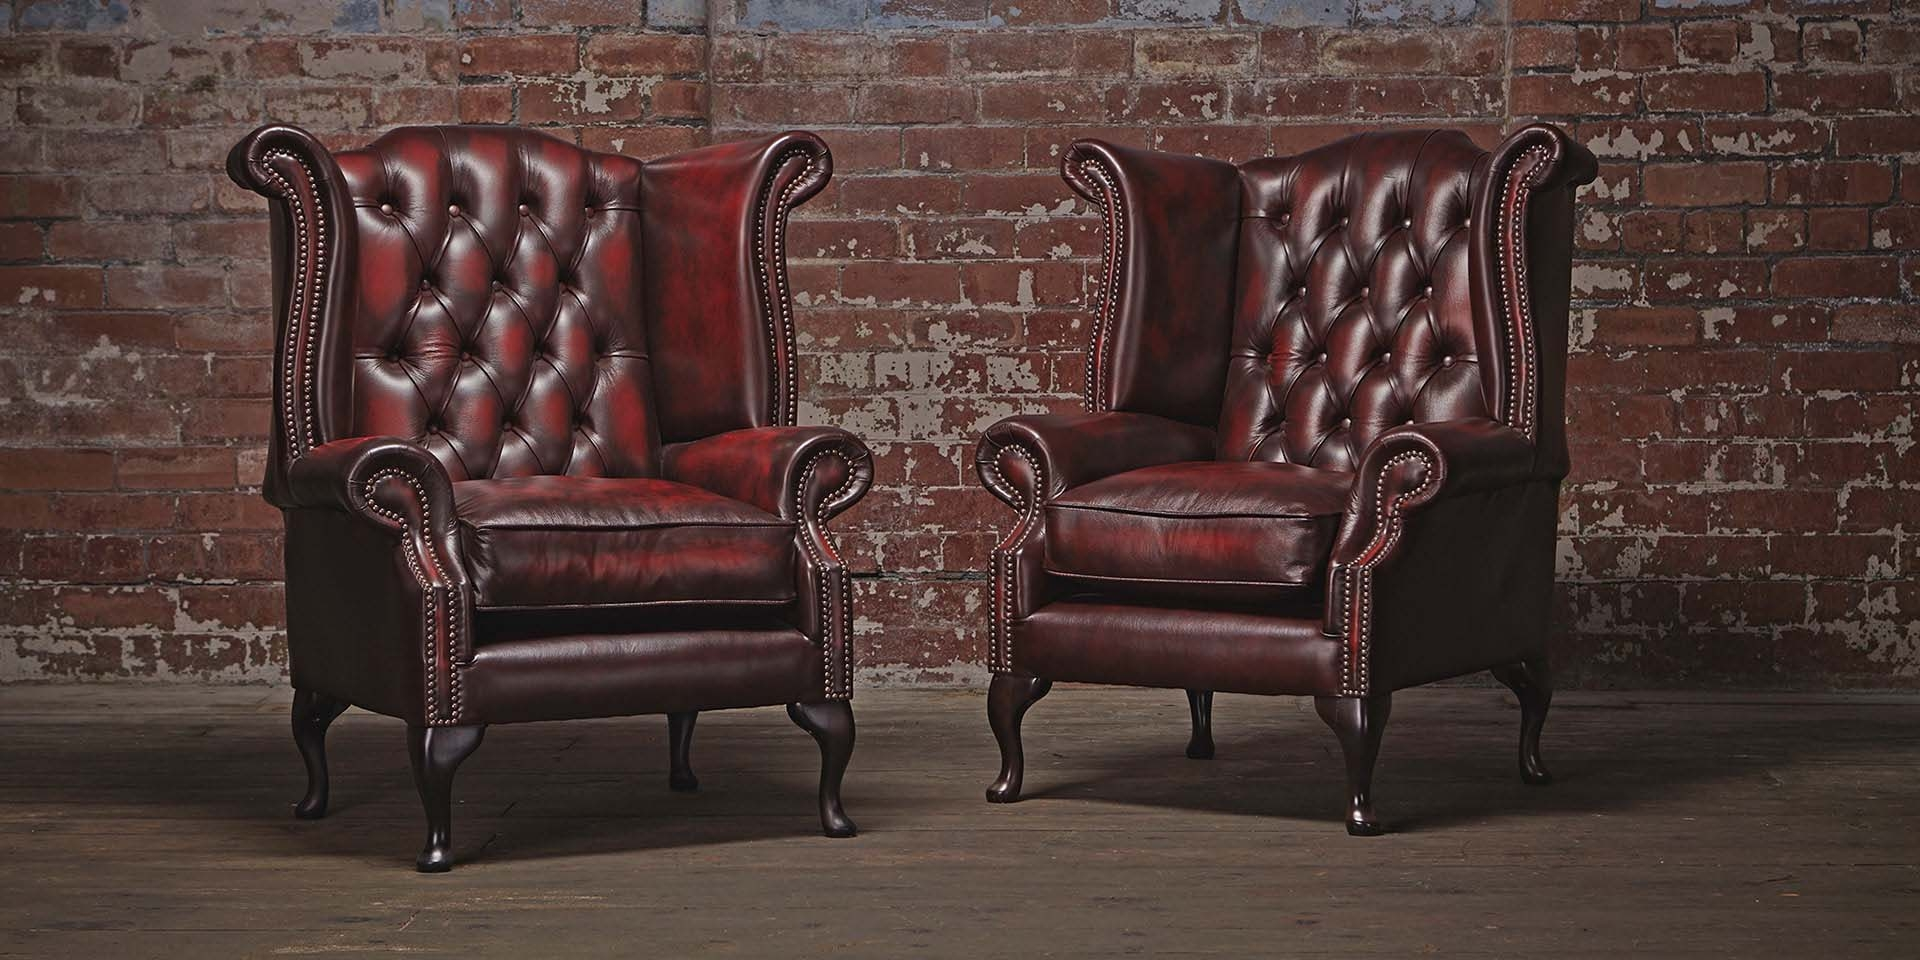 Chesterfields Of England The Original Chesterfield Company Throughout Chesterfield Furniture (Image 10 of 15)